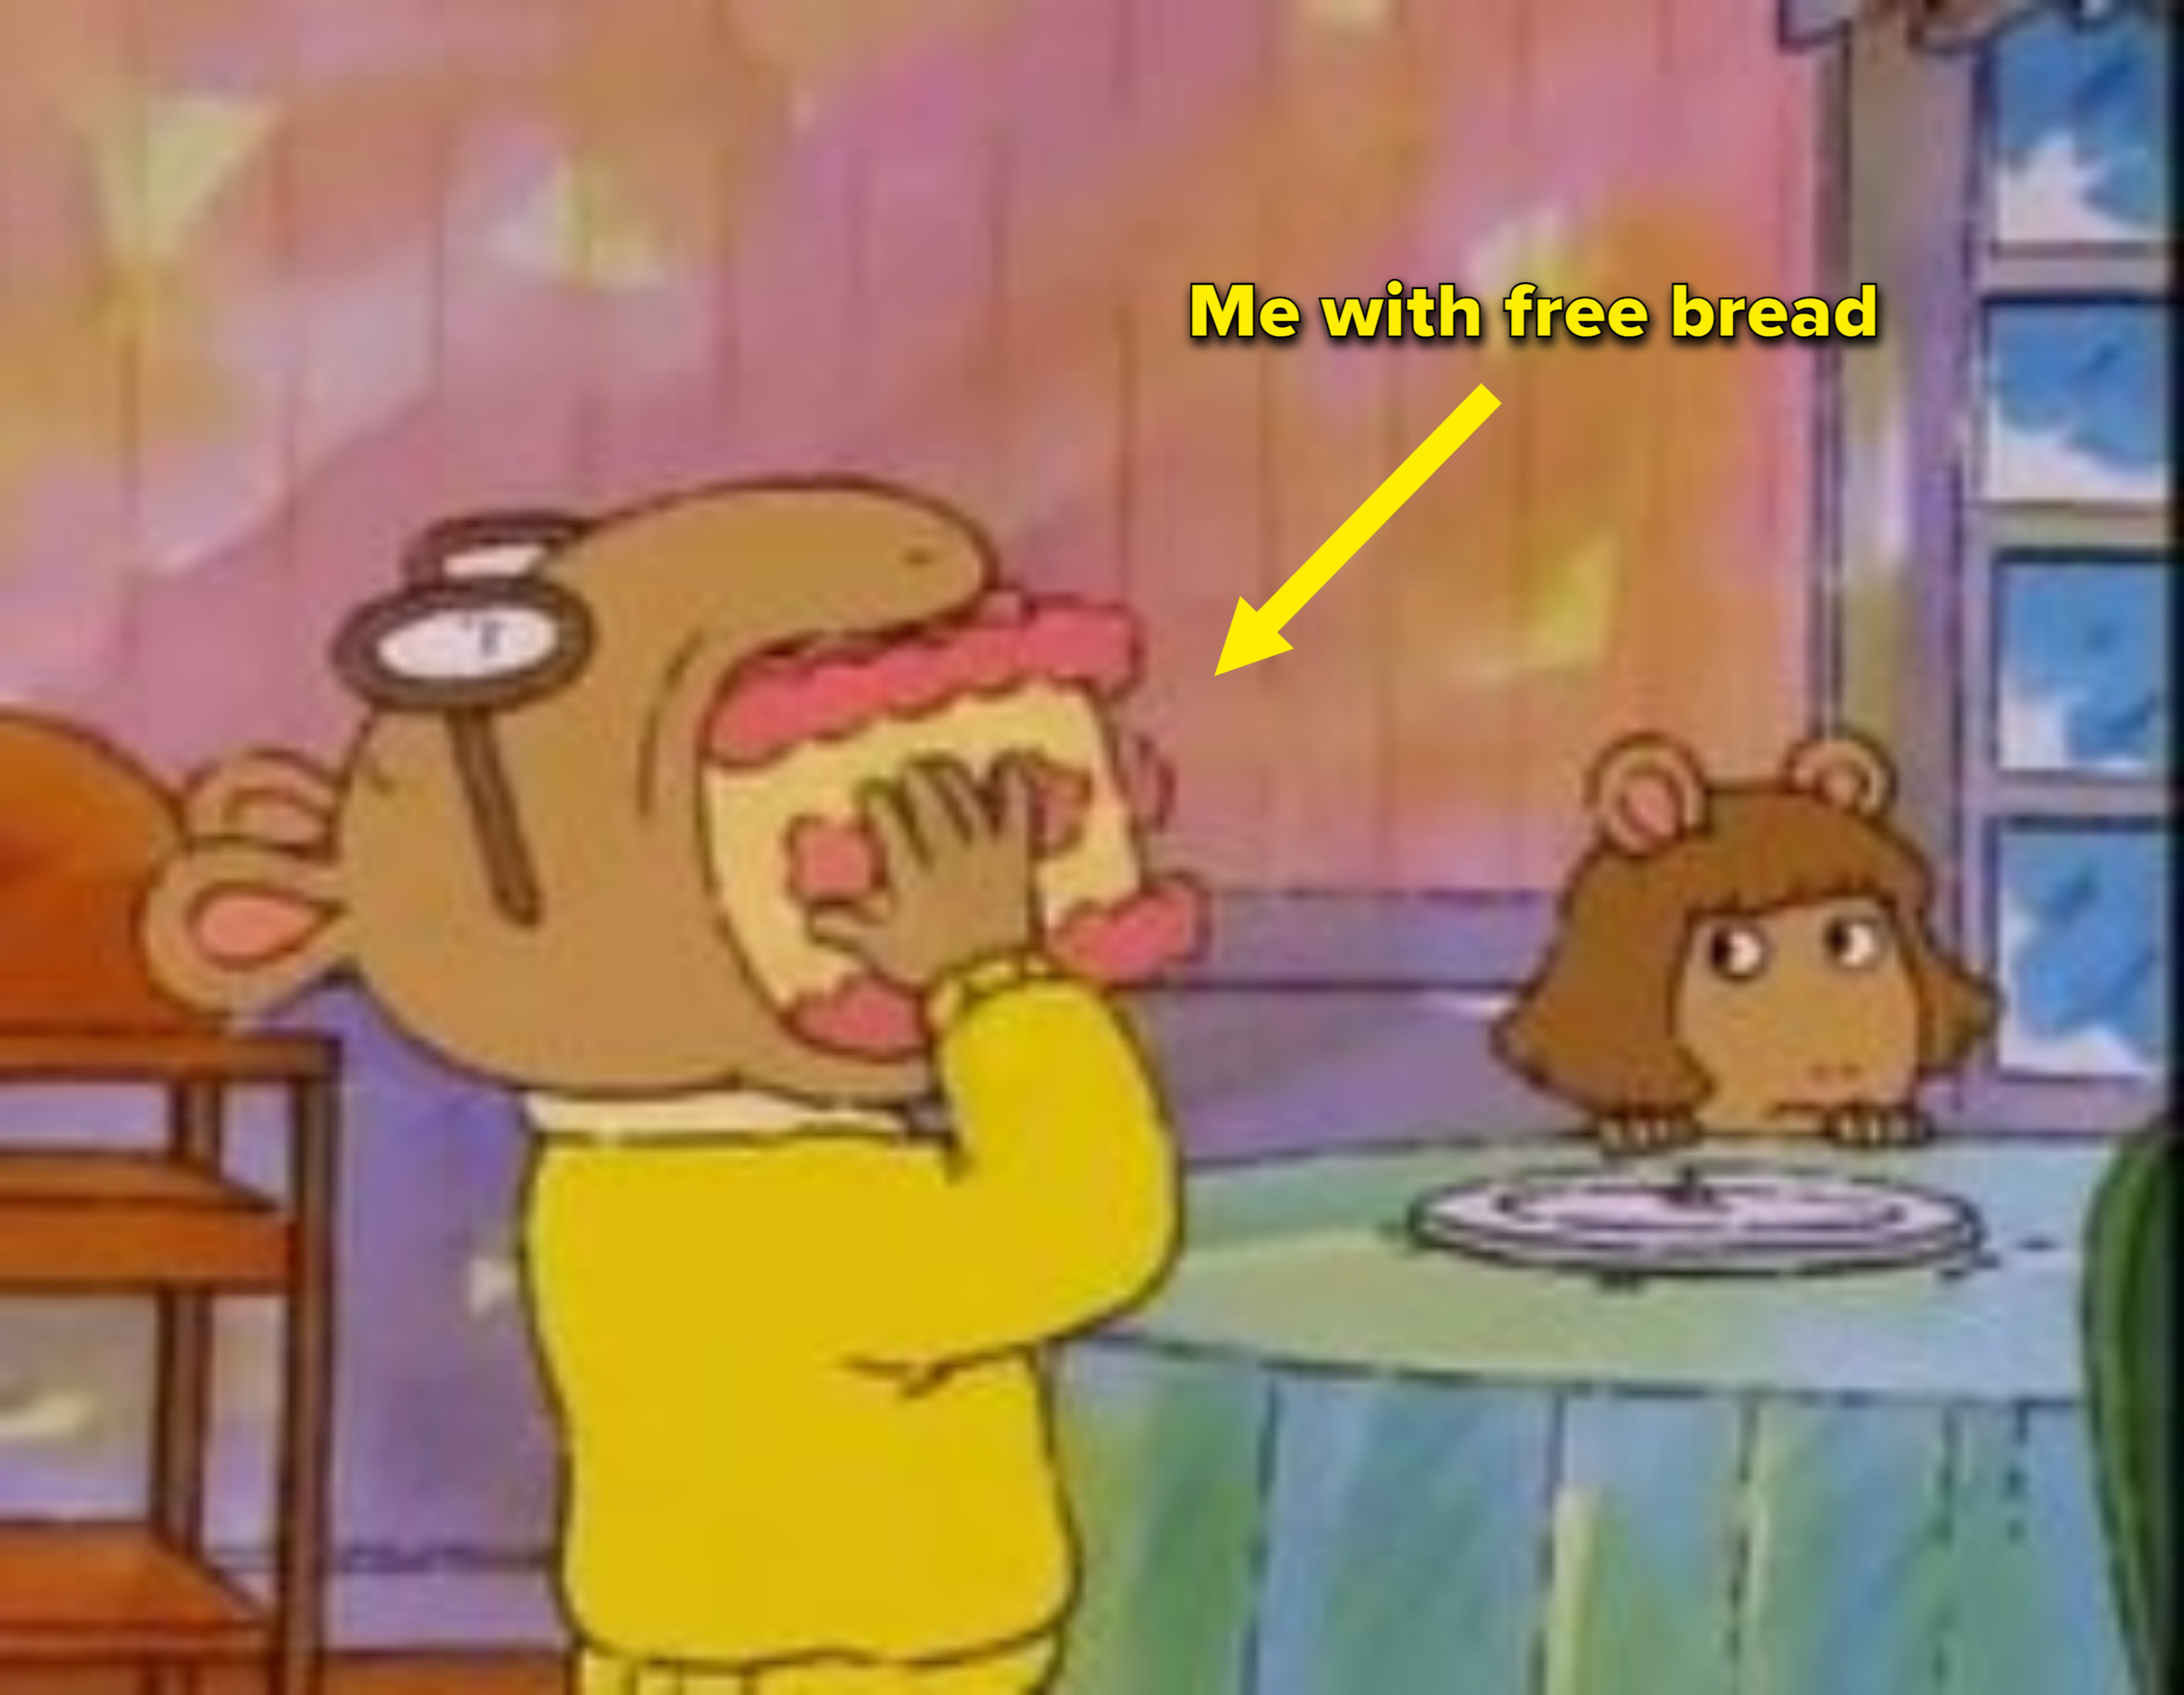 """Arthur stuffing a whole cake in his mouth with the caption """"Me with free bread"""""""